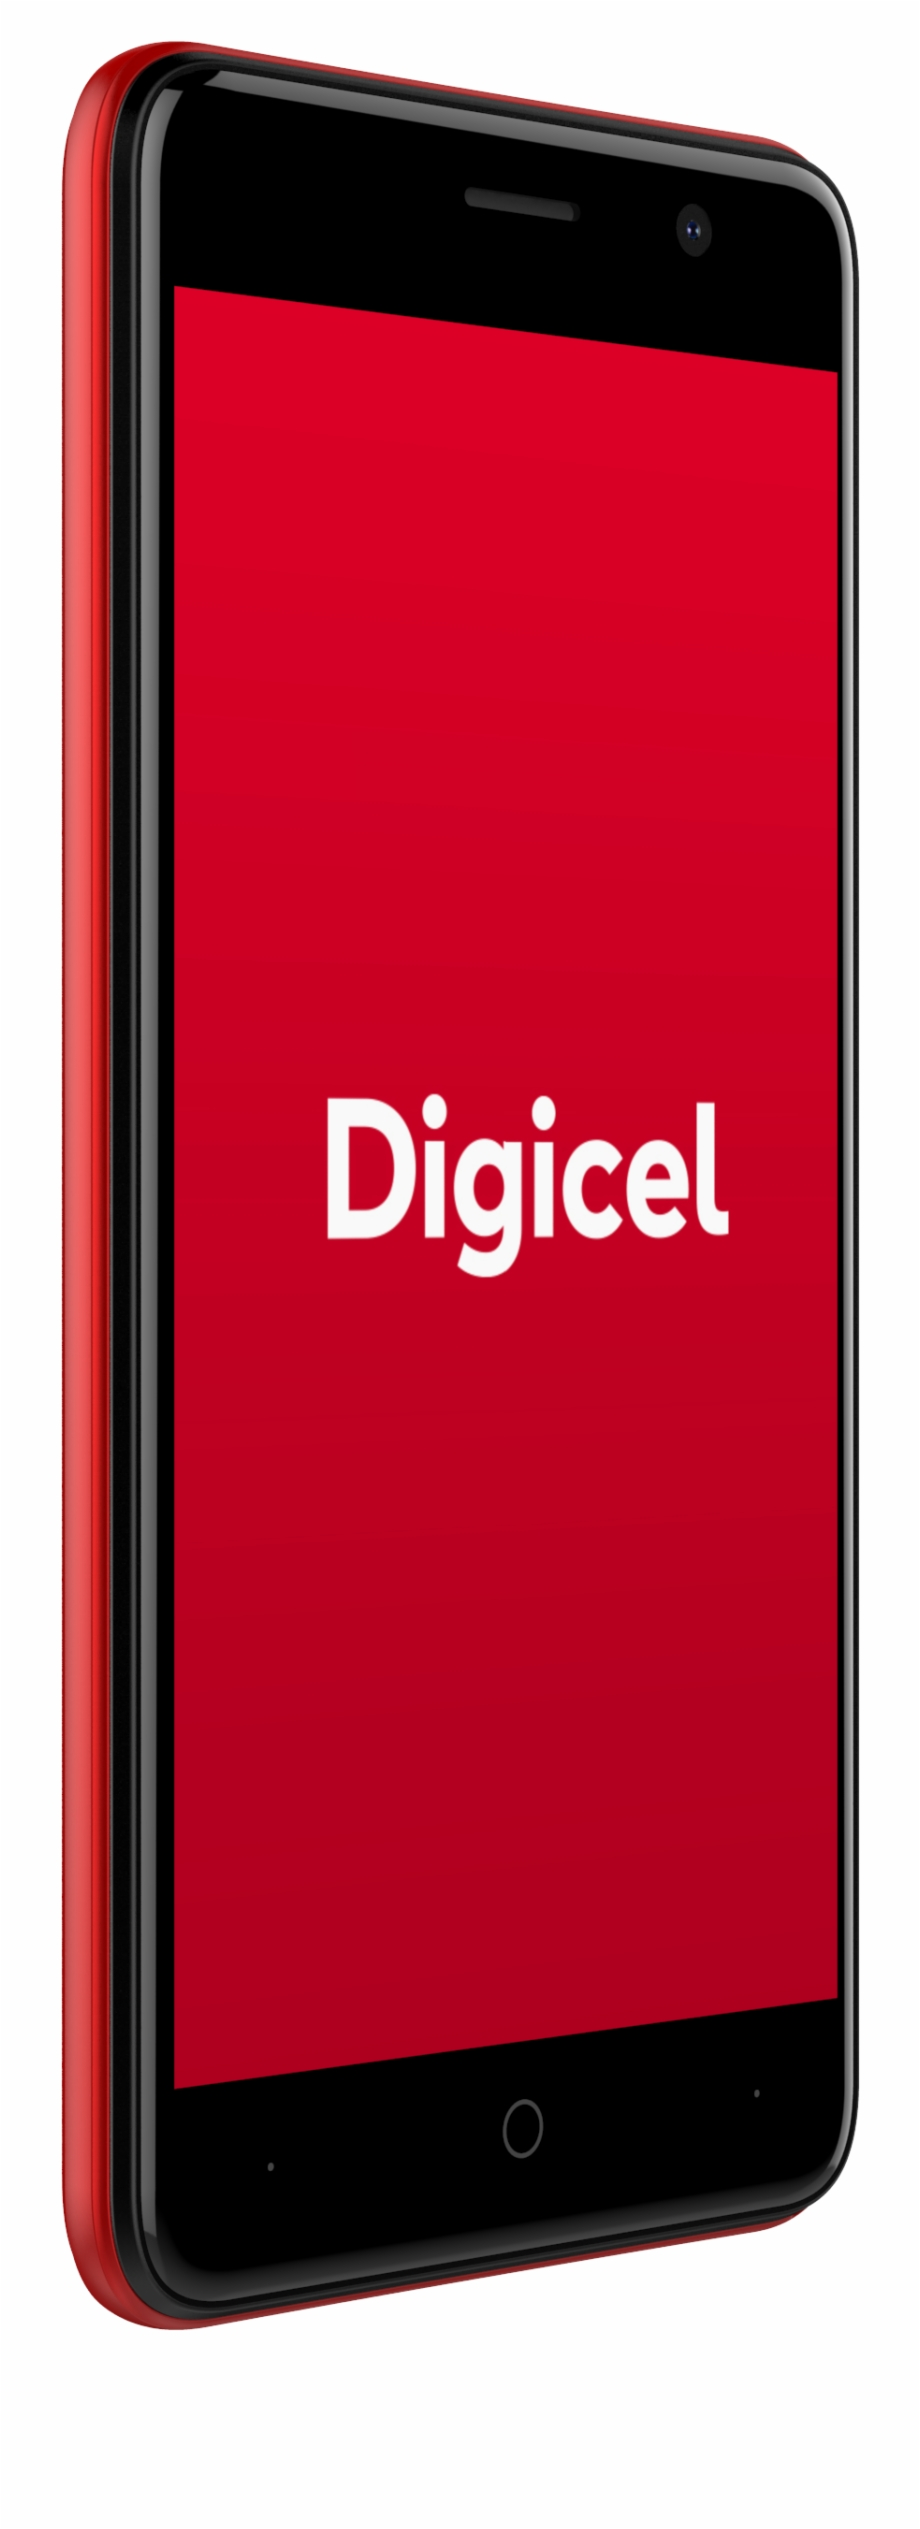 Clipart digicel vector black and white library Digicel Dl - Digicel Dl 501 Phone Free PNG Images & Clipart Download ... vector black and white library